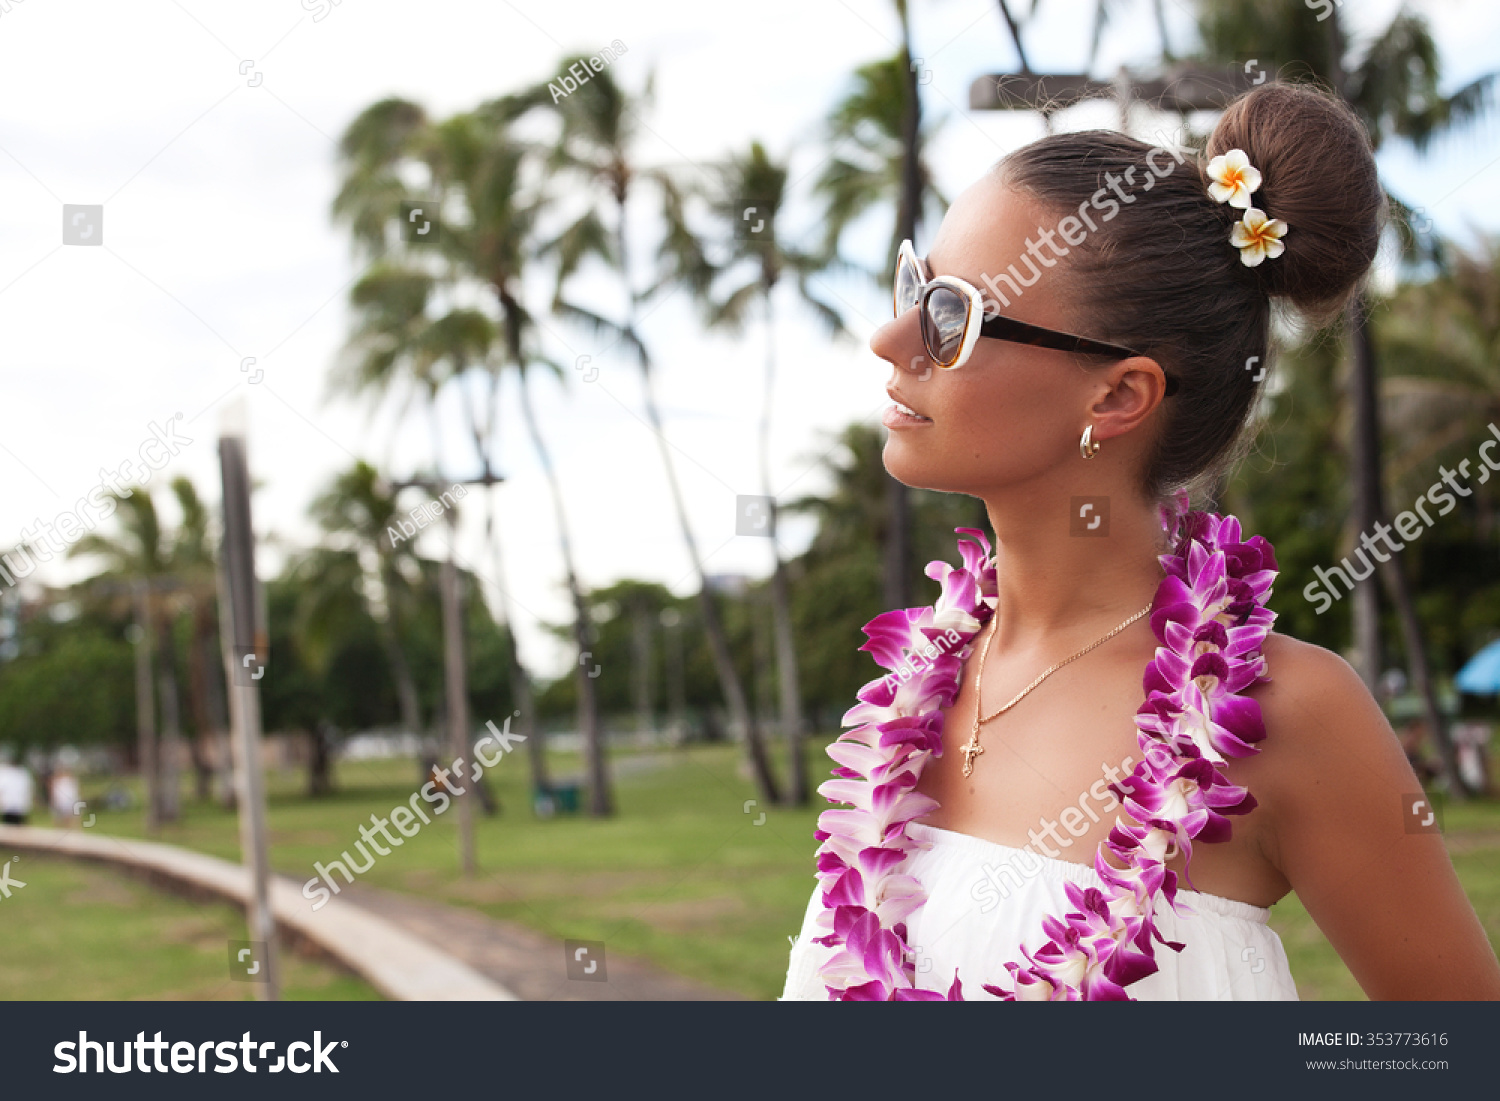 Hawaii woman flower lei garland pink stock photo safe to use hawaii woman with flower lei garland of pink orchids beautiful smiling woman in white dress izmirmasajfo